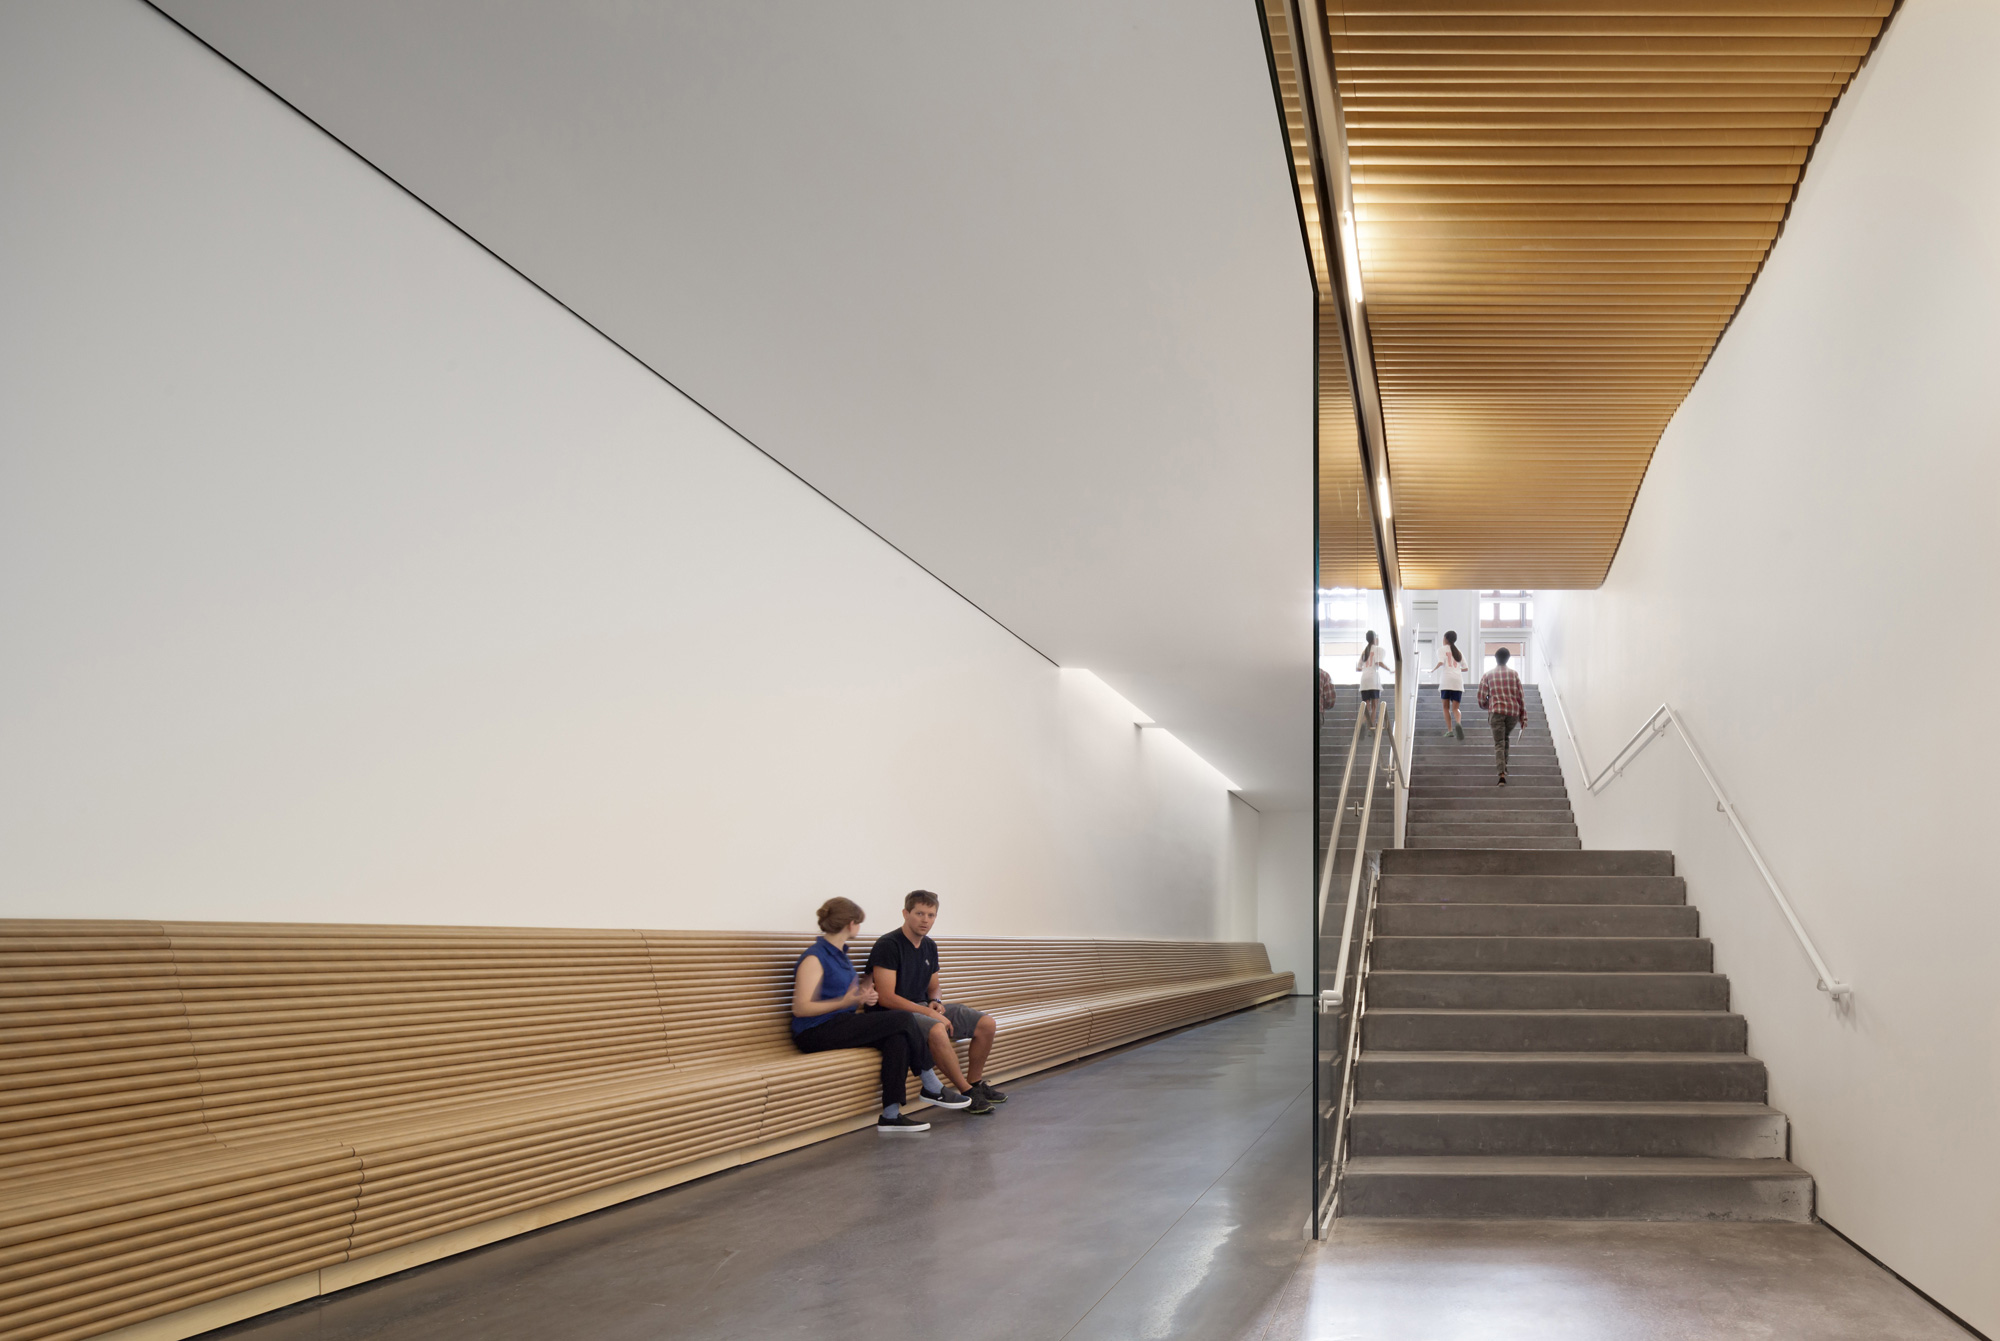 Aspen Art Museum / Shigeru Ban Architects (27)